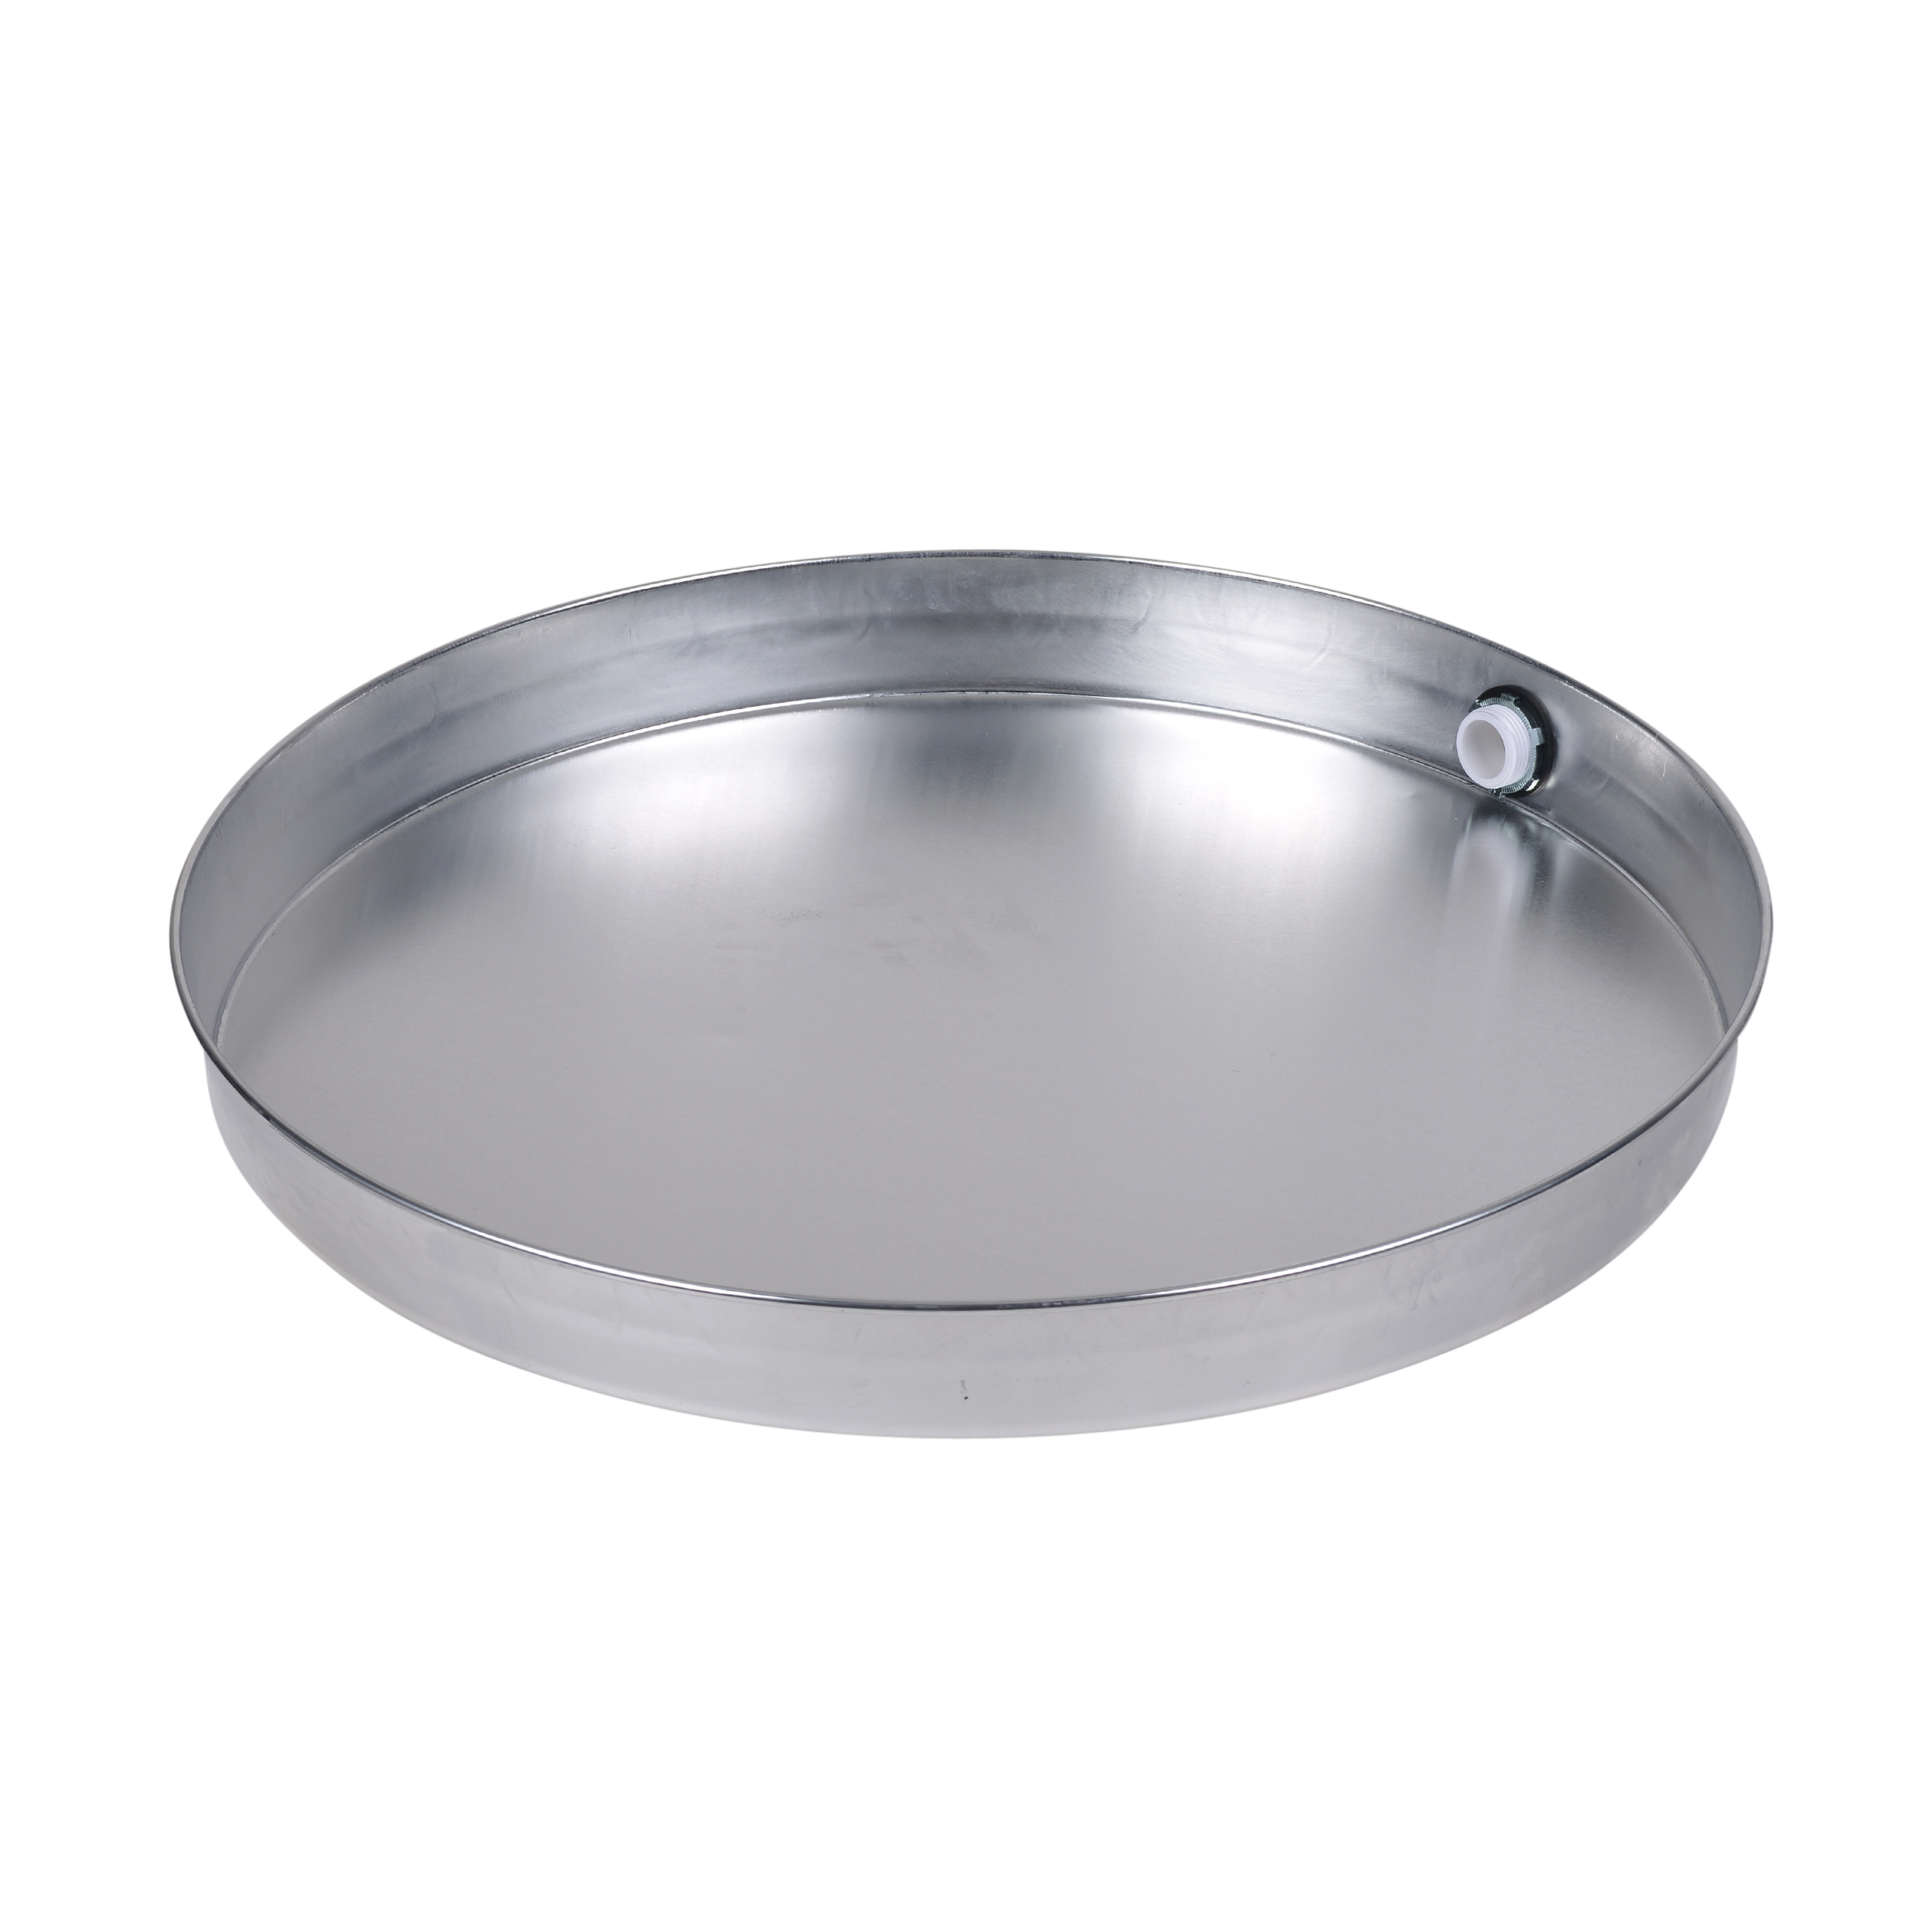 Oatey 22 In. Aluminum Water Heater Pan With 1 In. Adapter 52393